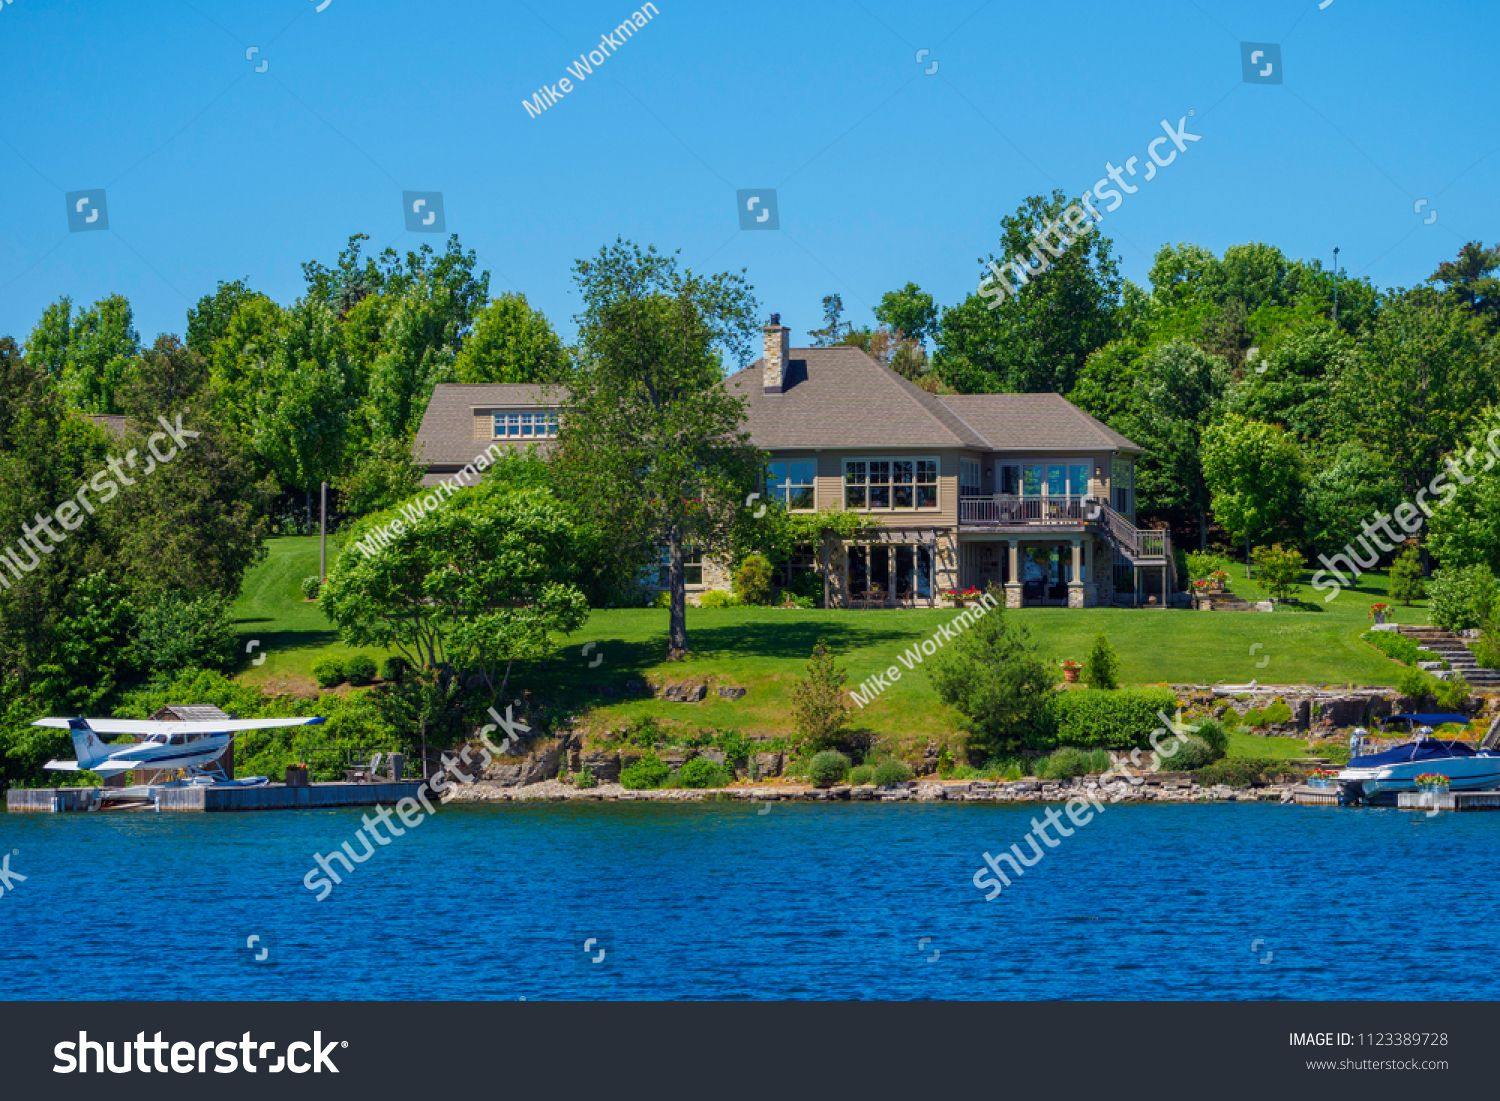 kingston ontario canada june 20th 2018 luxury house on the river rh pinterest com